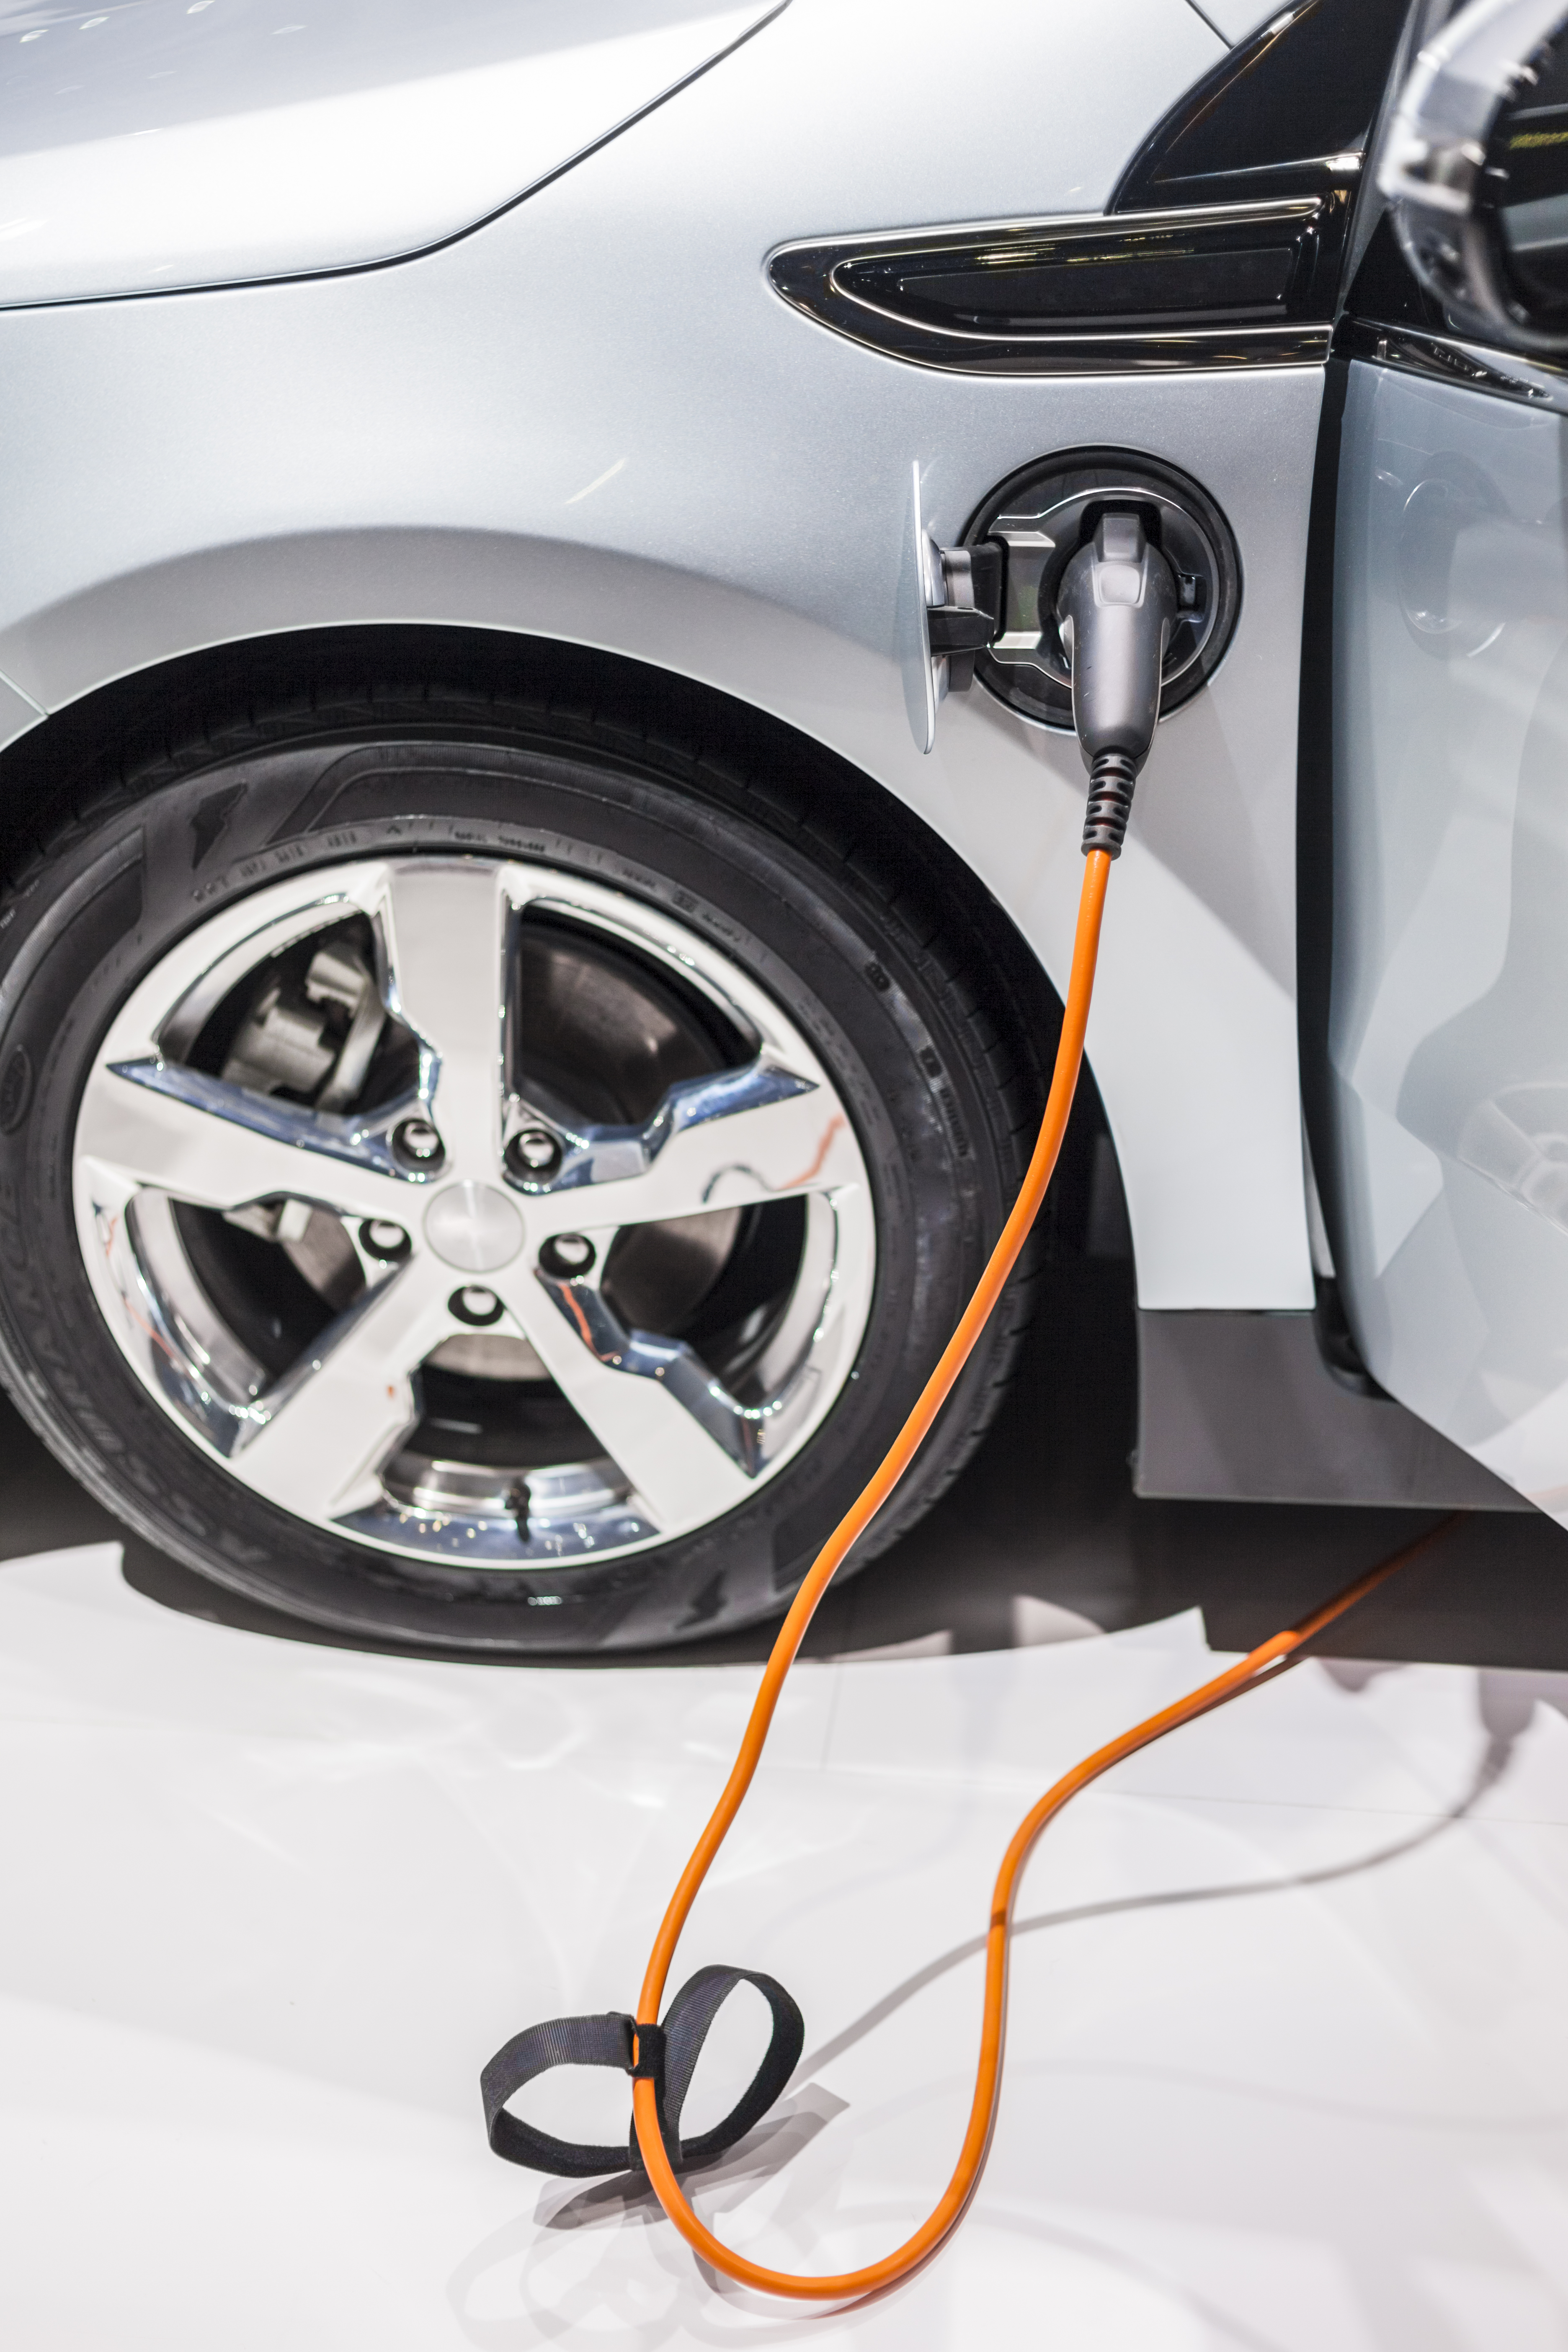 Electric vehicle market 2013